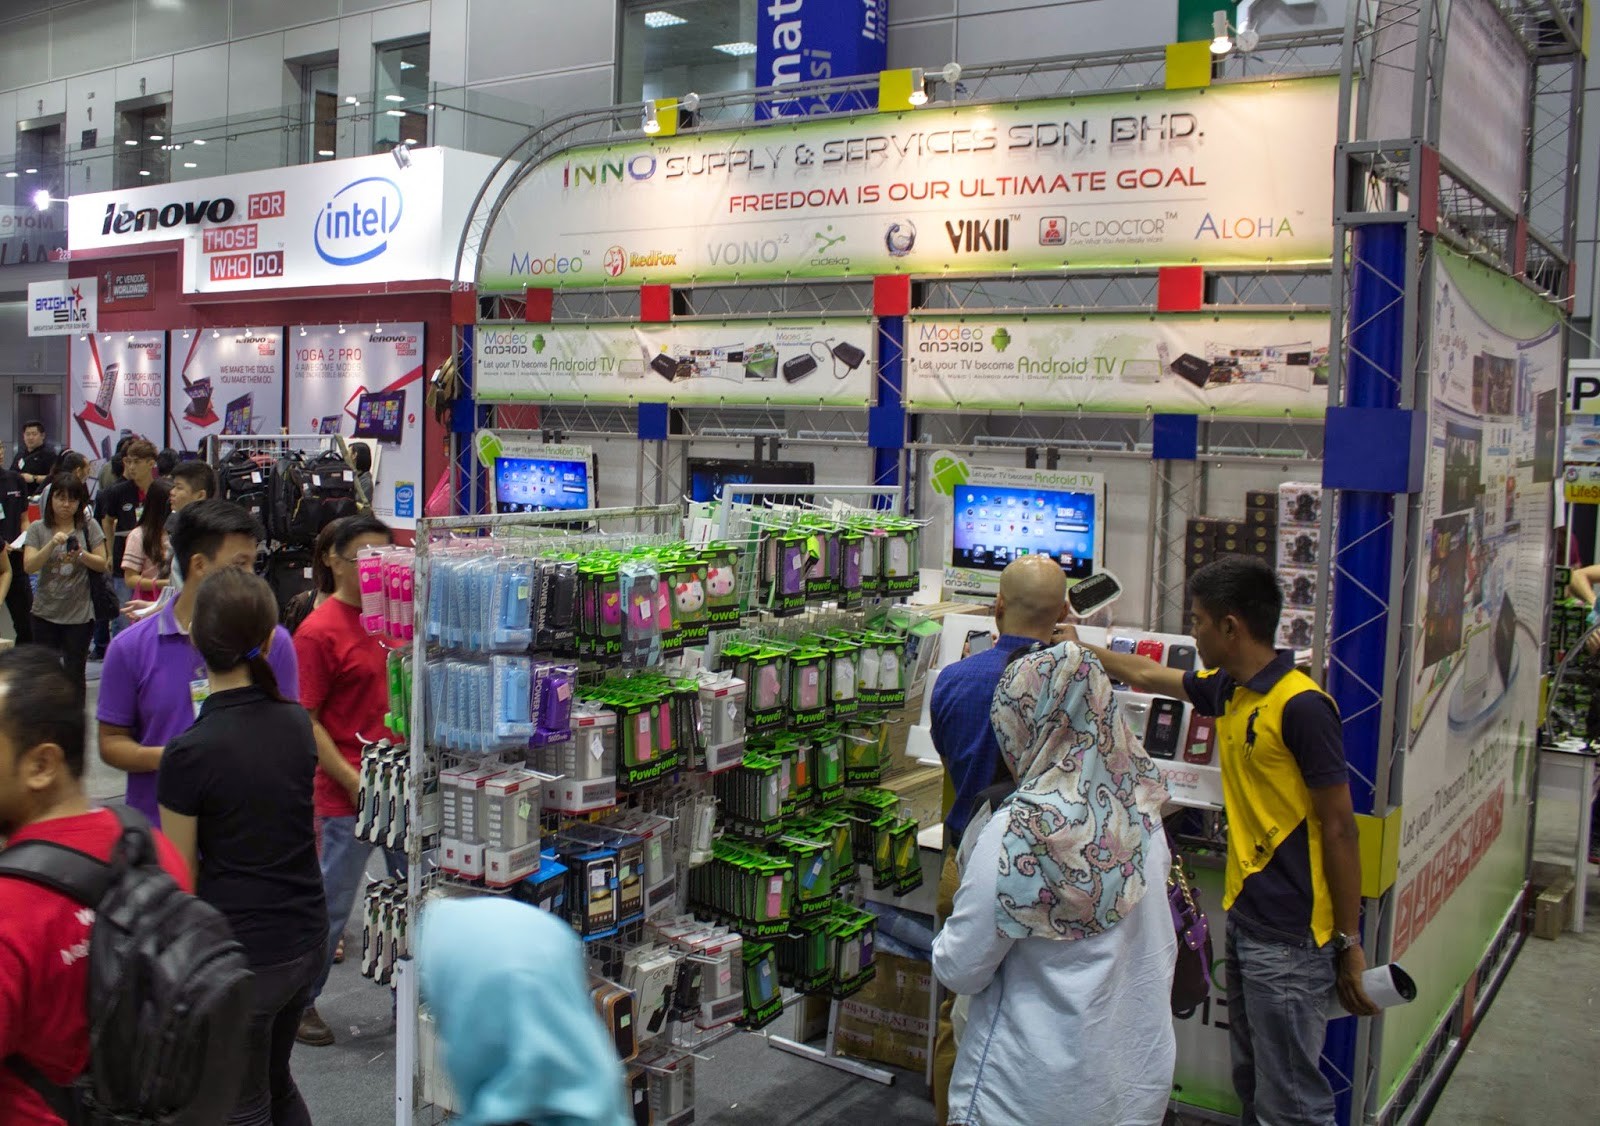 Coverage of PIKOM PC Fair 2014 @ Kuala Lumpur Convention Center 334